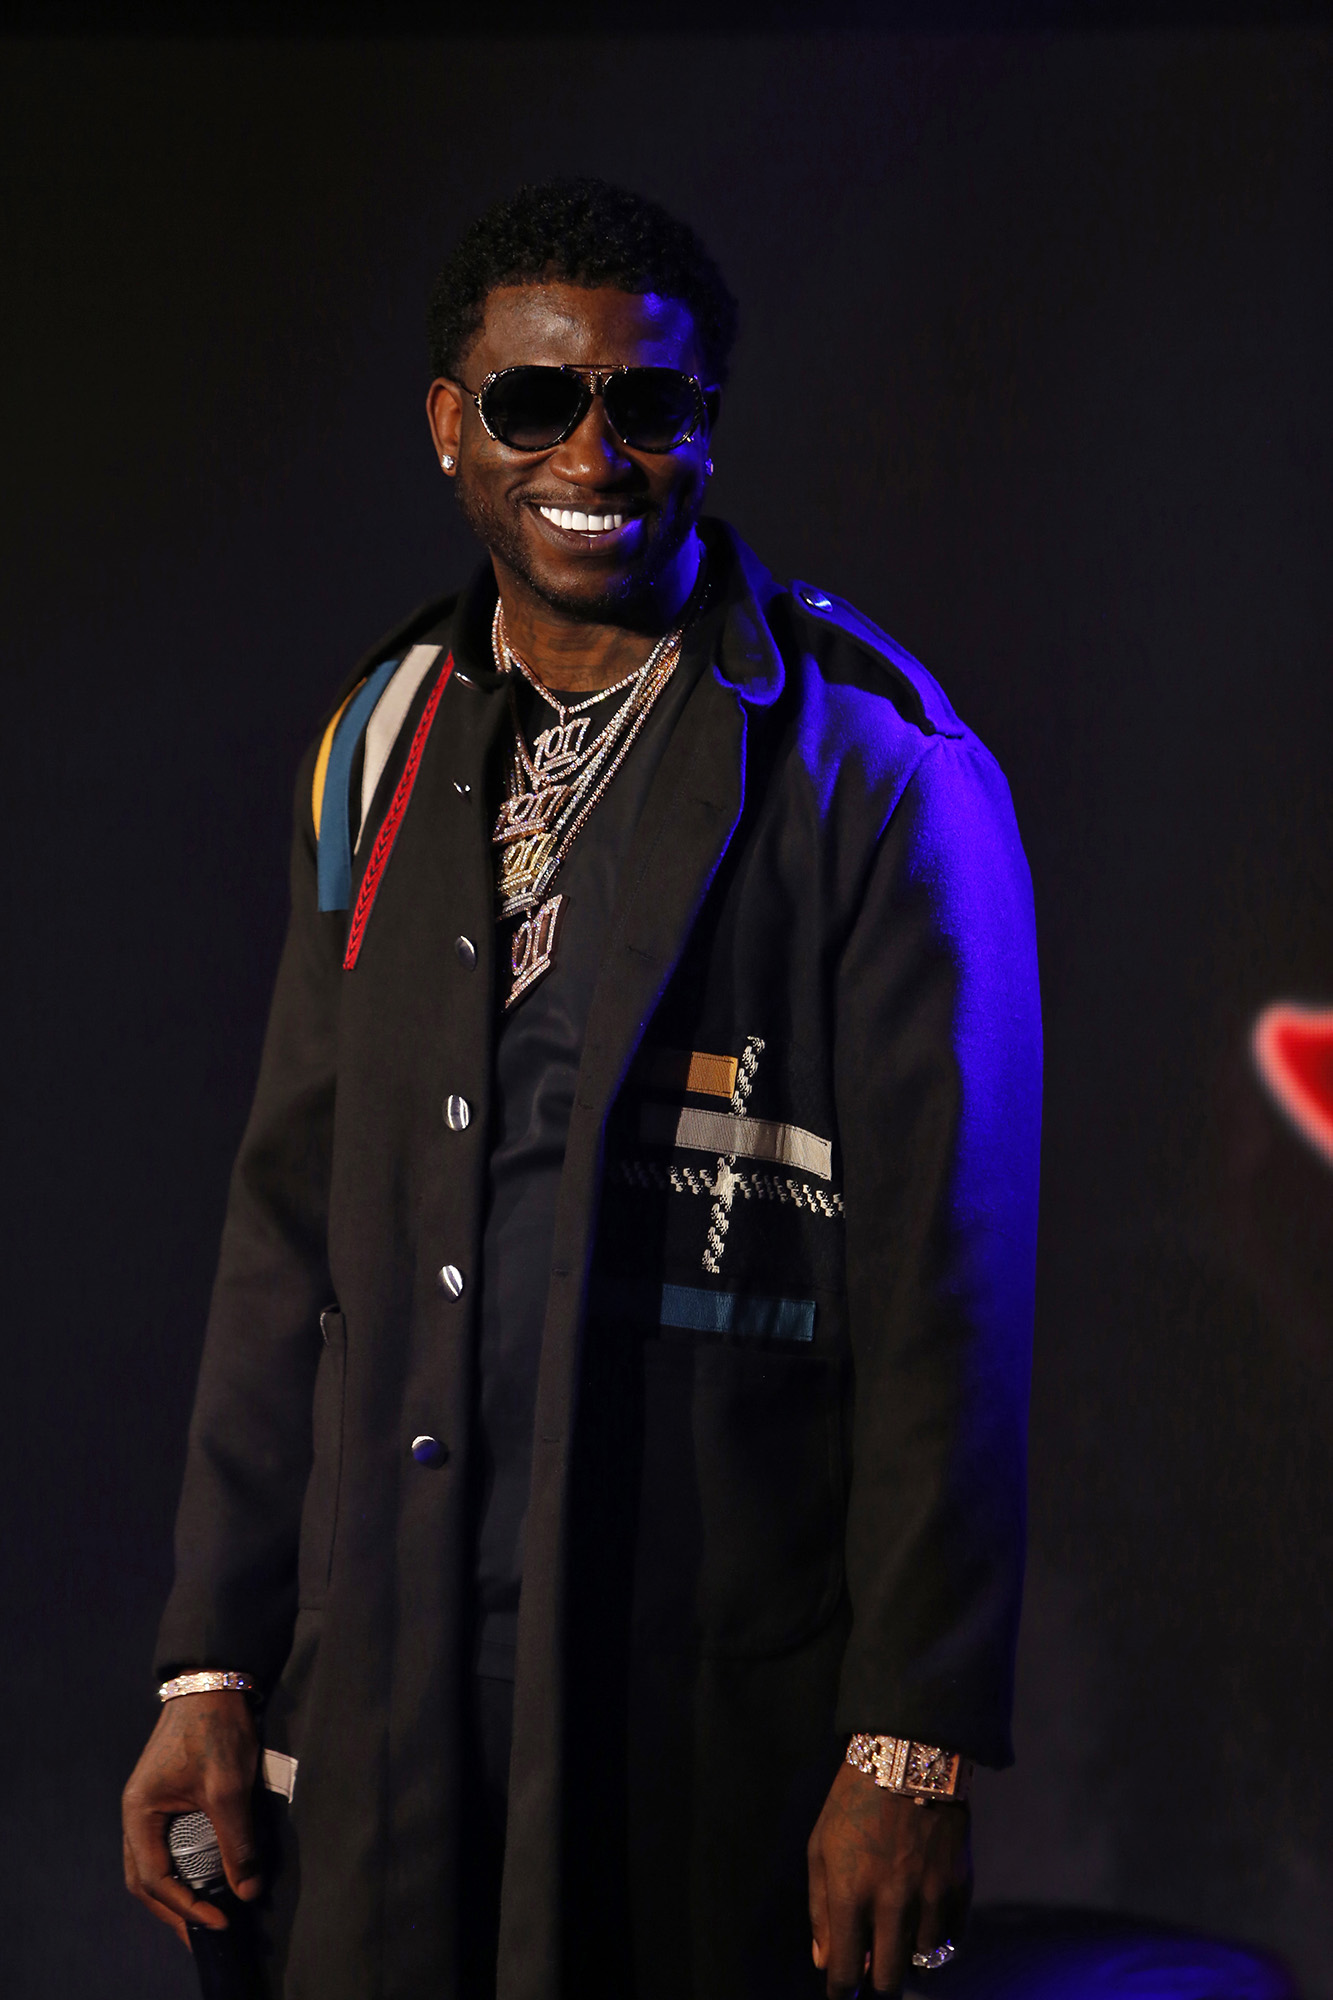 In Case You Missed It: Gucci Mane & Migos On Jimmy Kimmel Live